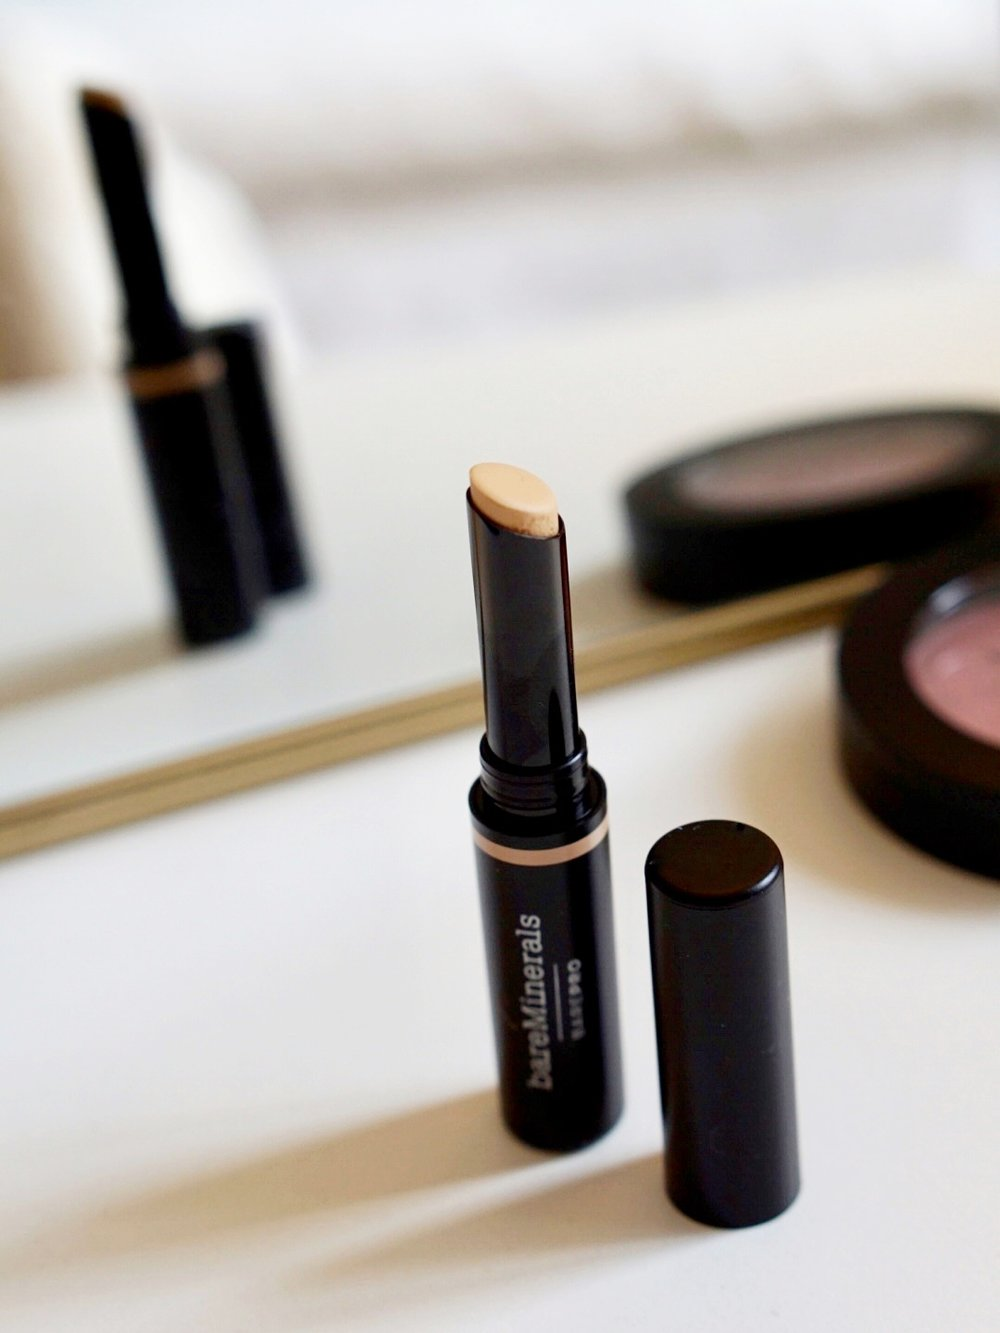 The concealer stick in  Medium Warm #07 .